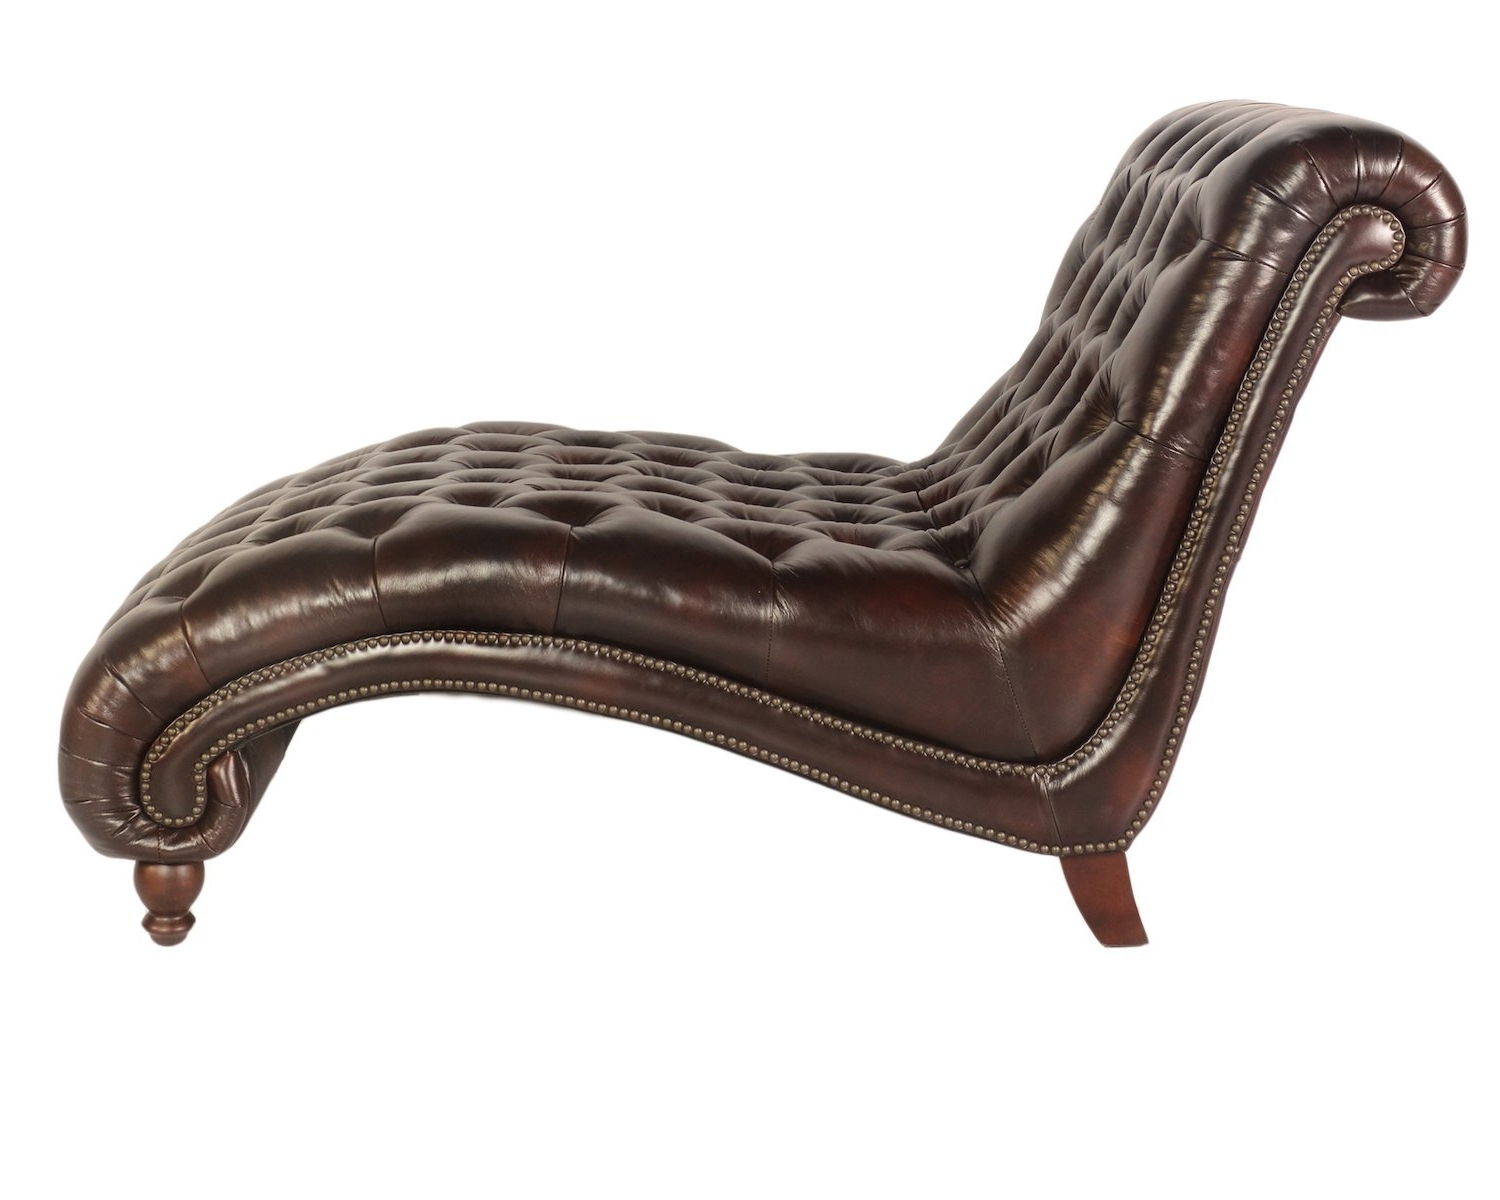 Amazon: Lazzaro C3988 Double Chaise In Vintage Toberlone Regarding Fashionable Chaise Lounge Chairs Made In Usa (View 9 of 15)